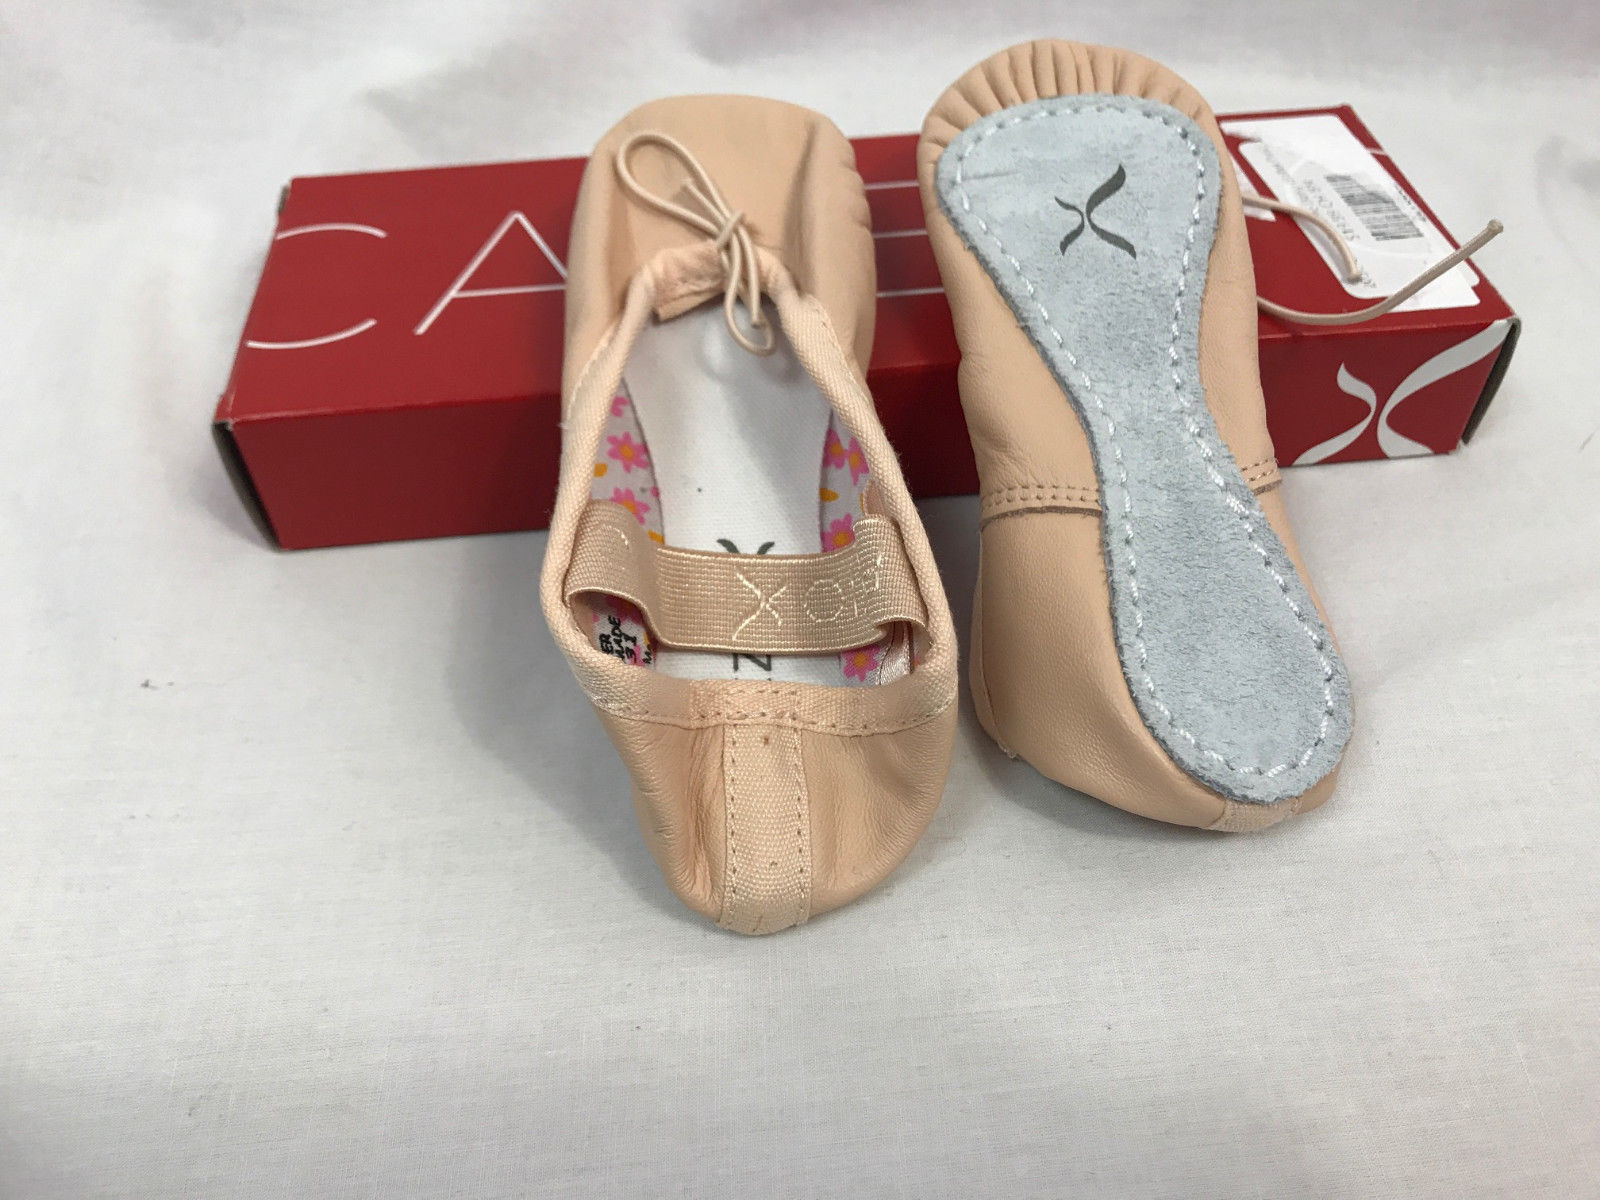 Capezio Girls Daisy Full Sole 205C Ballet Pink Shoes, Child 1.5 W, New in Box